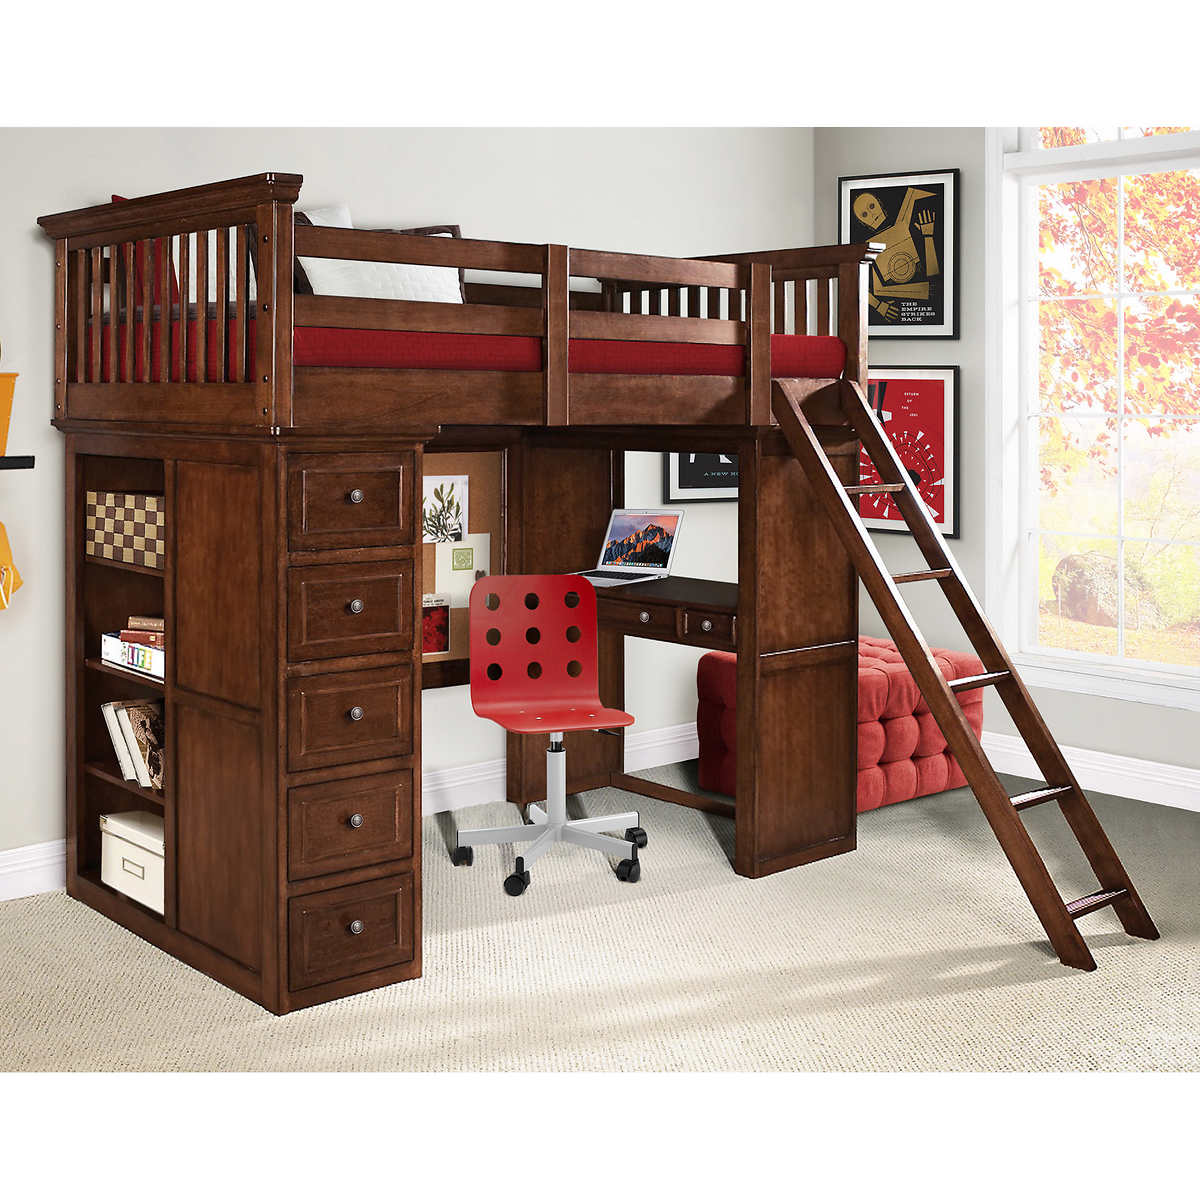 Twin loft bed with desk and storage - Dylan Twin Loft Bed With Storage And Desk Item 1157698 Click To Zoom